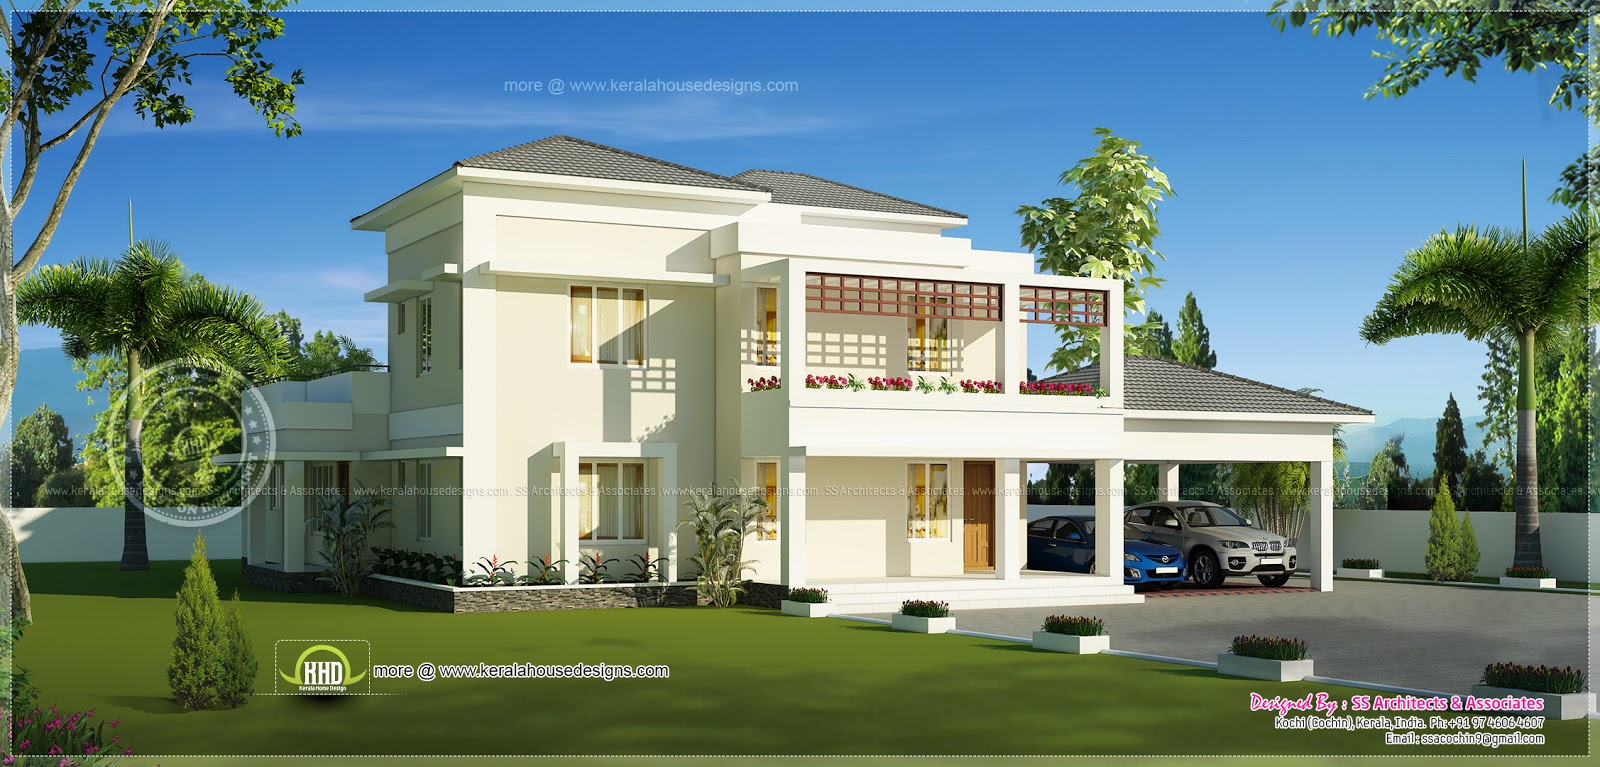 Beautiful double storey modern villa exterior kerala for Exterior villa design photo gallery